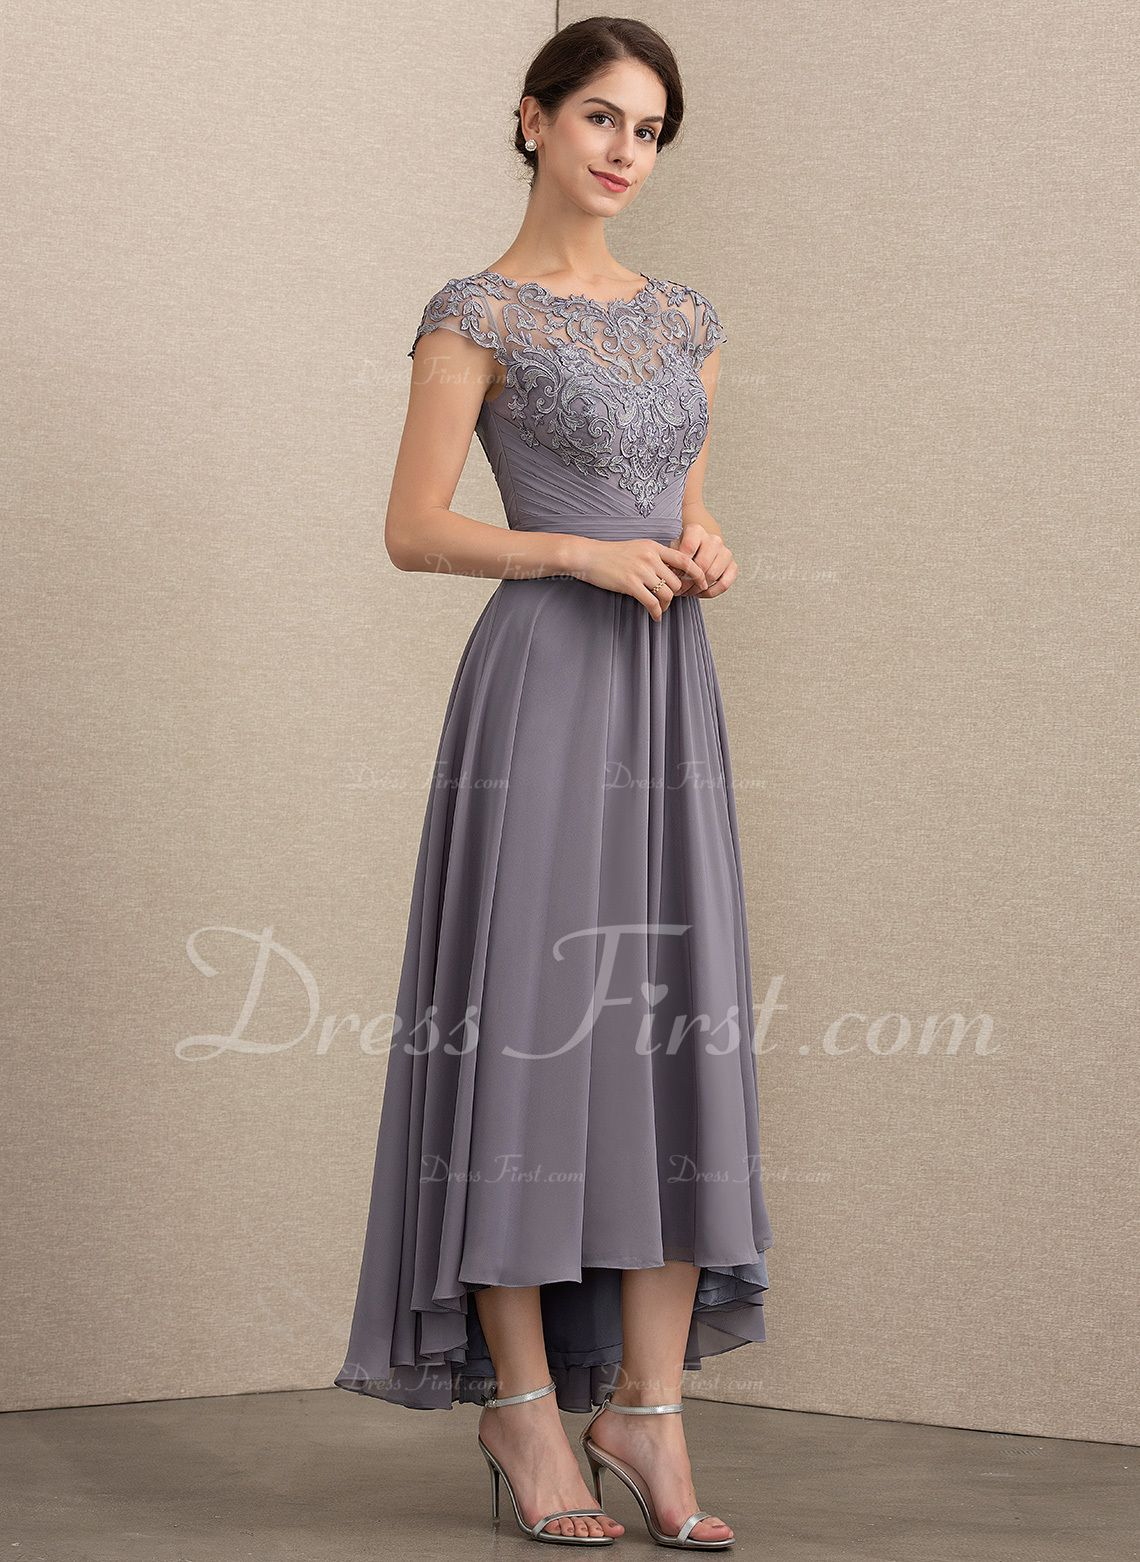 943df05a52e A-Line Princess Scoop Neck Asymmetrical Chiffon Lace Mother of the Bride  Dress (008164106) - Mother of the Bride Dresses - DressFirst